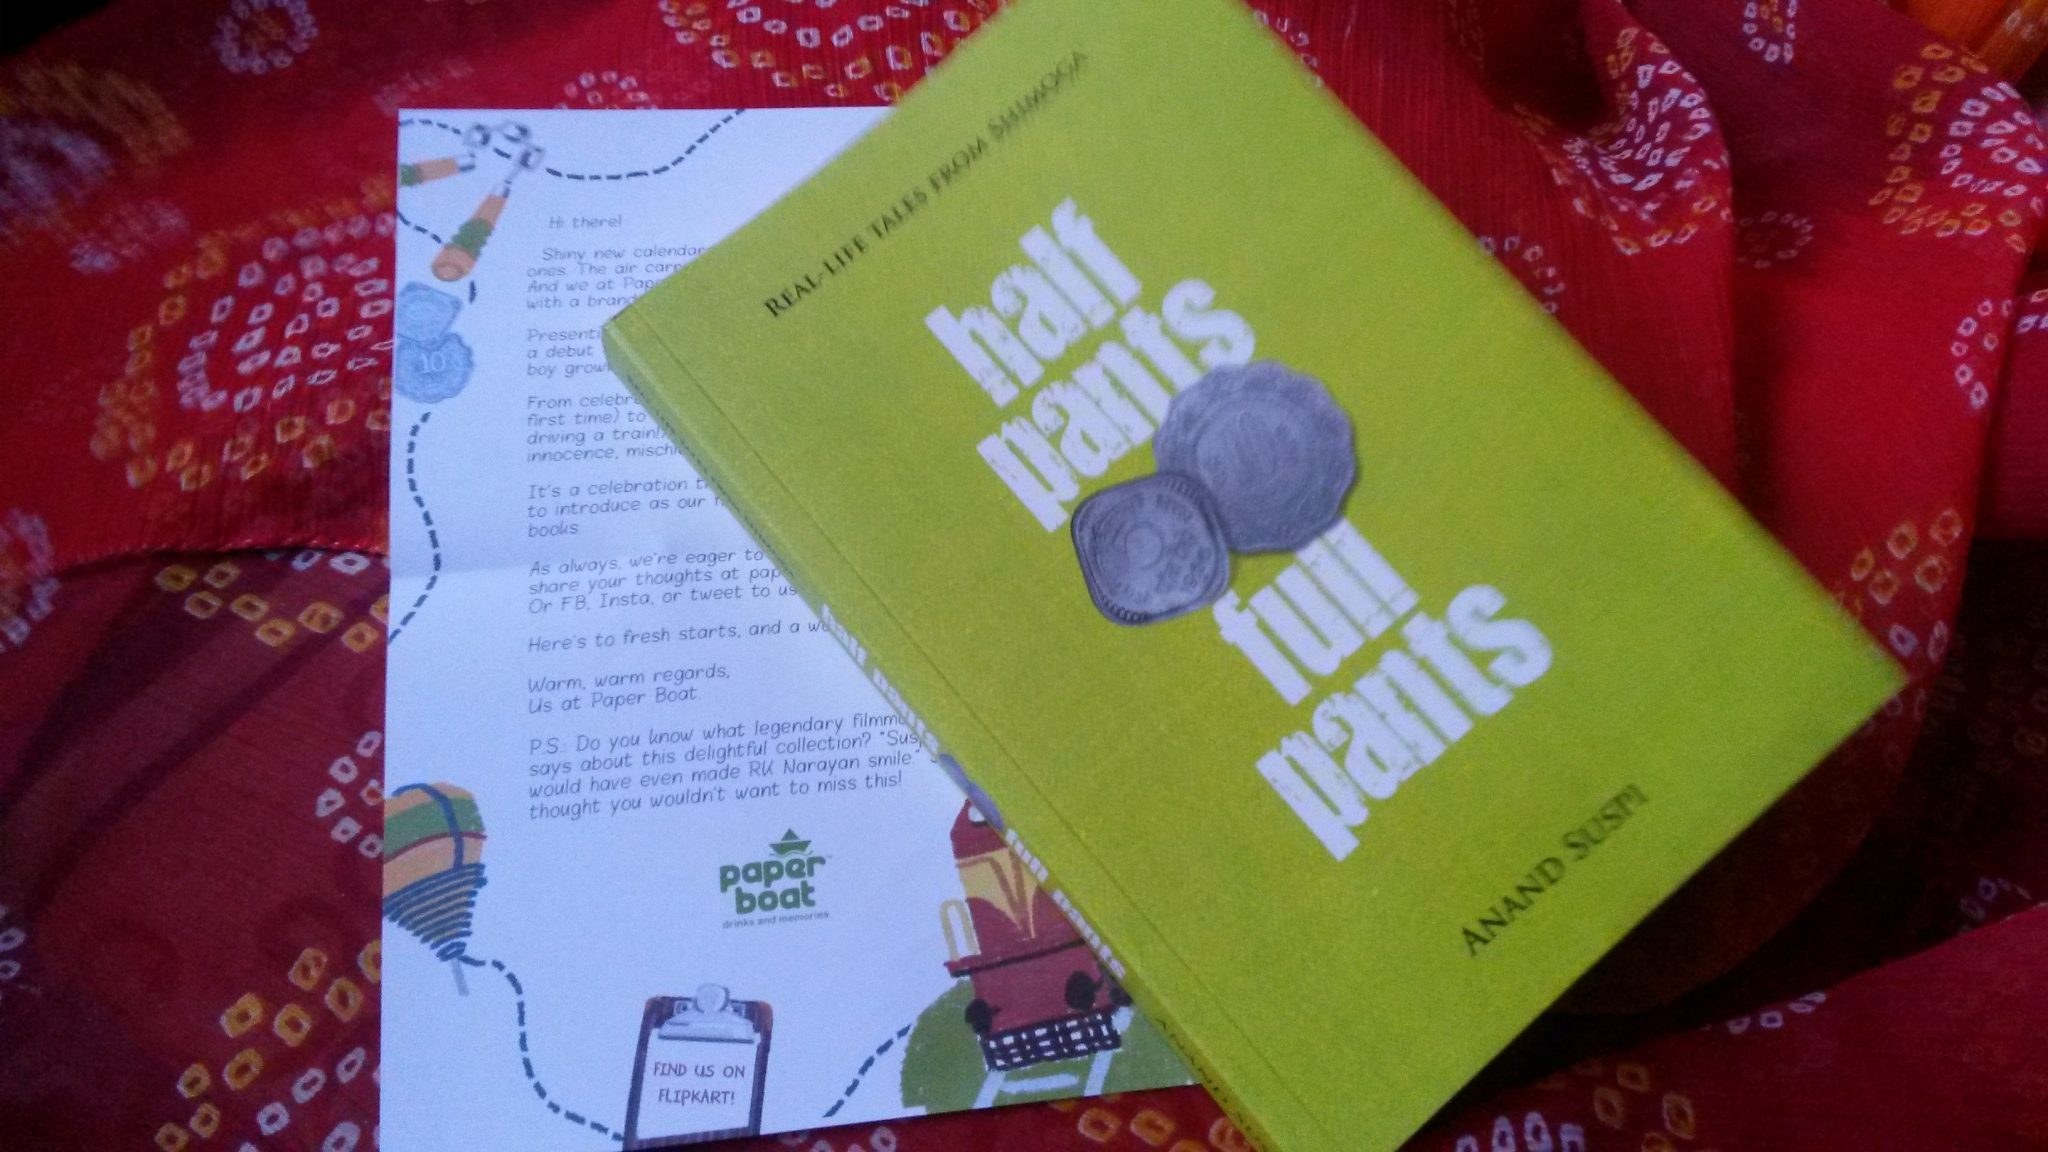 Paper Boat presents Half Pants Full Pants by Anand Suspi Book review